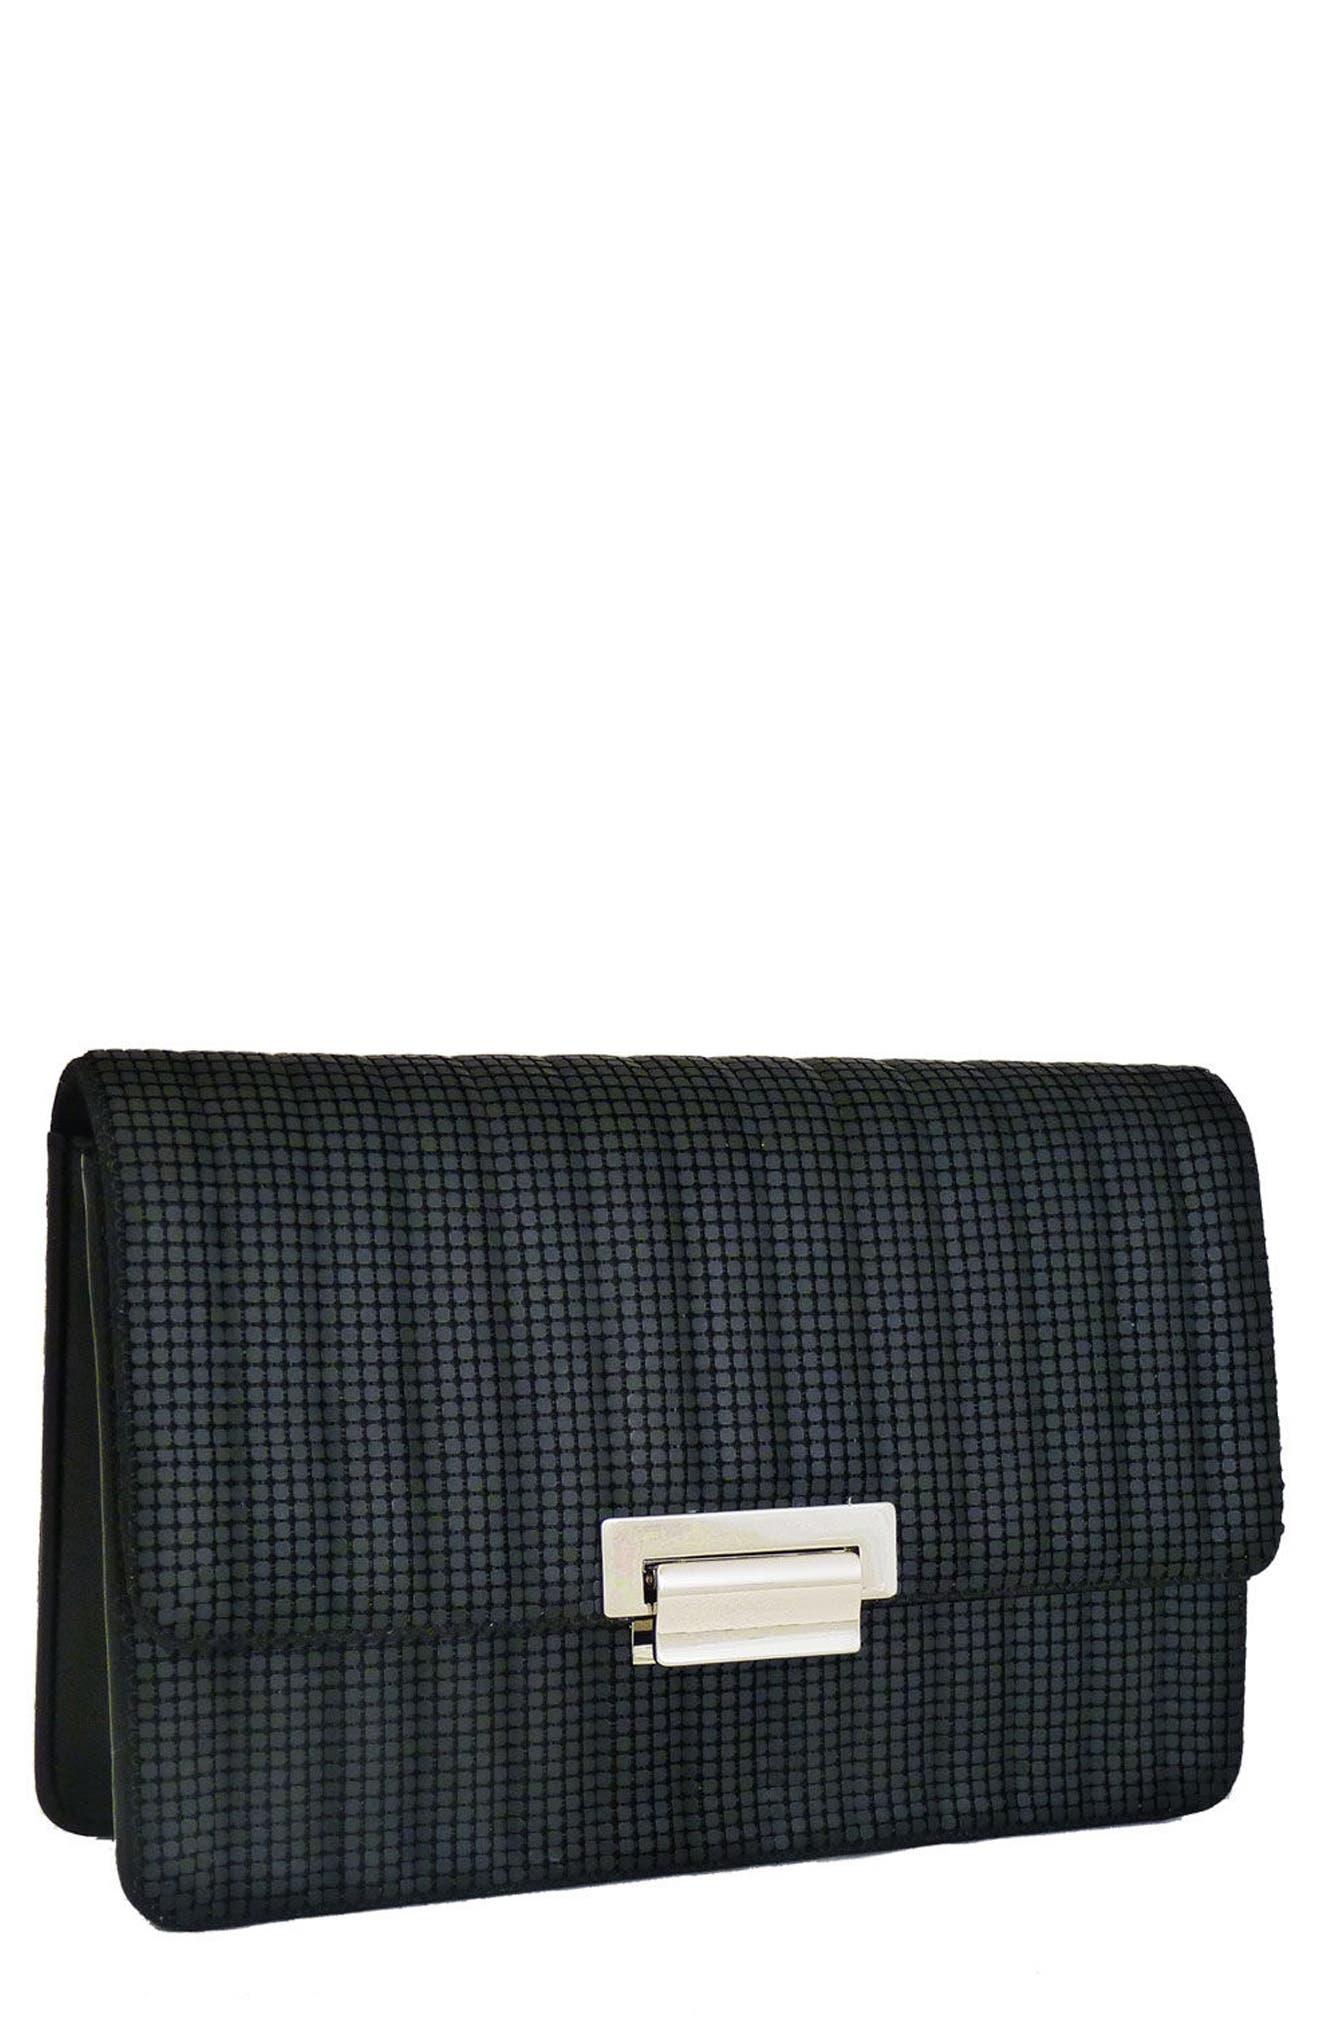 Sydney Quilted Clutch,                             Main thumbnail 1, color,                             MATTE BLACK